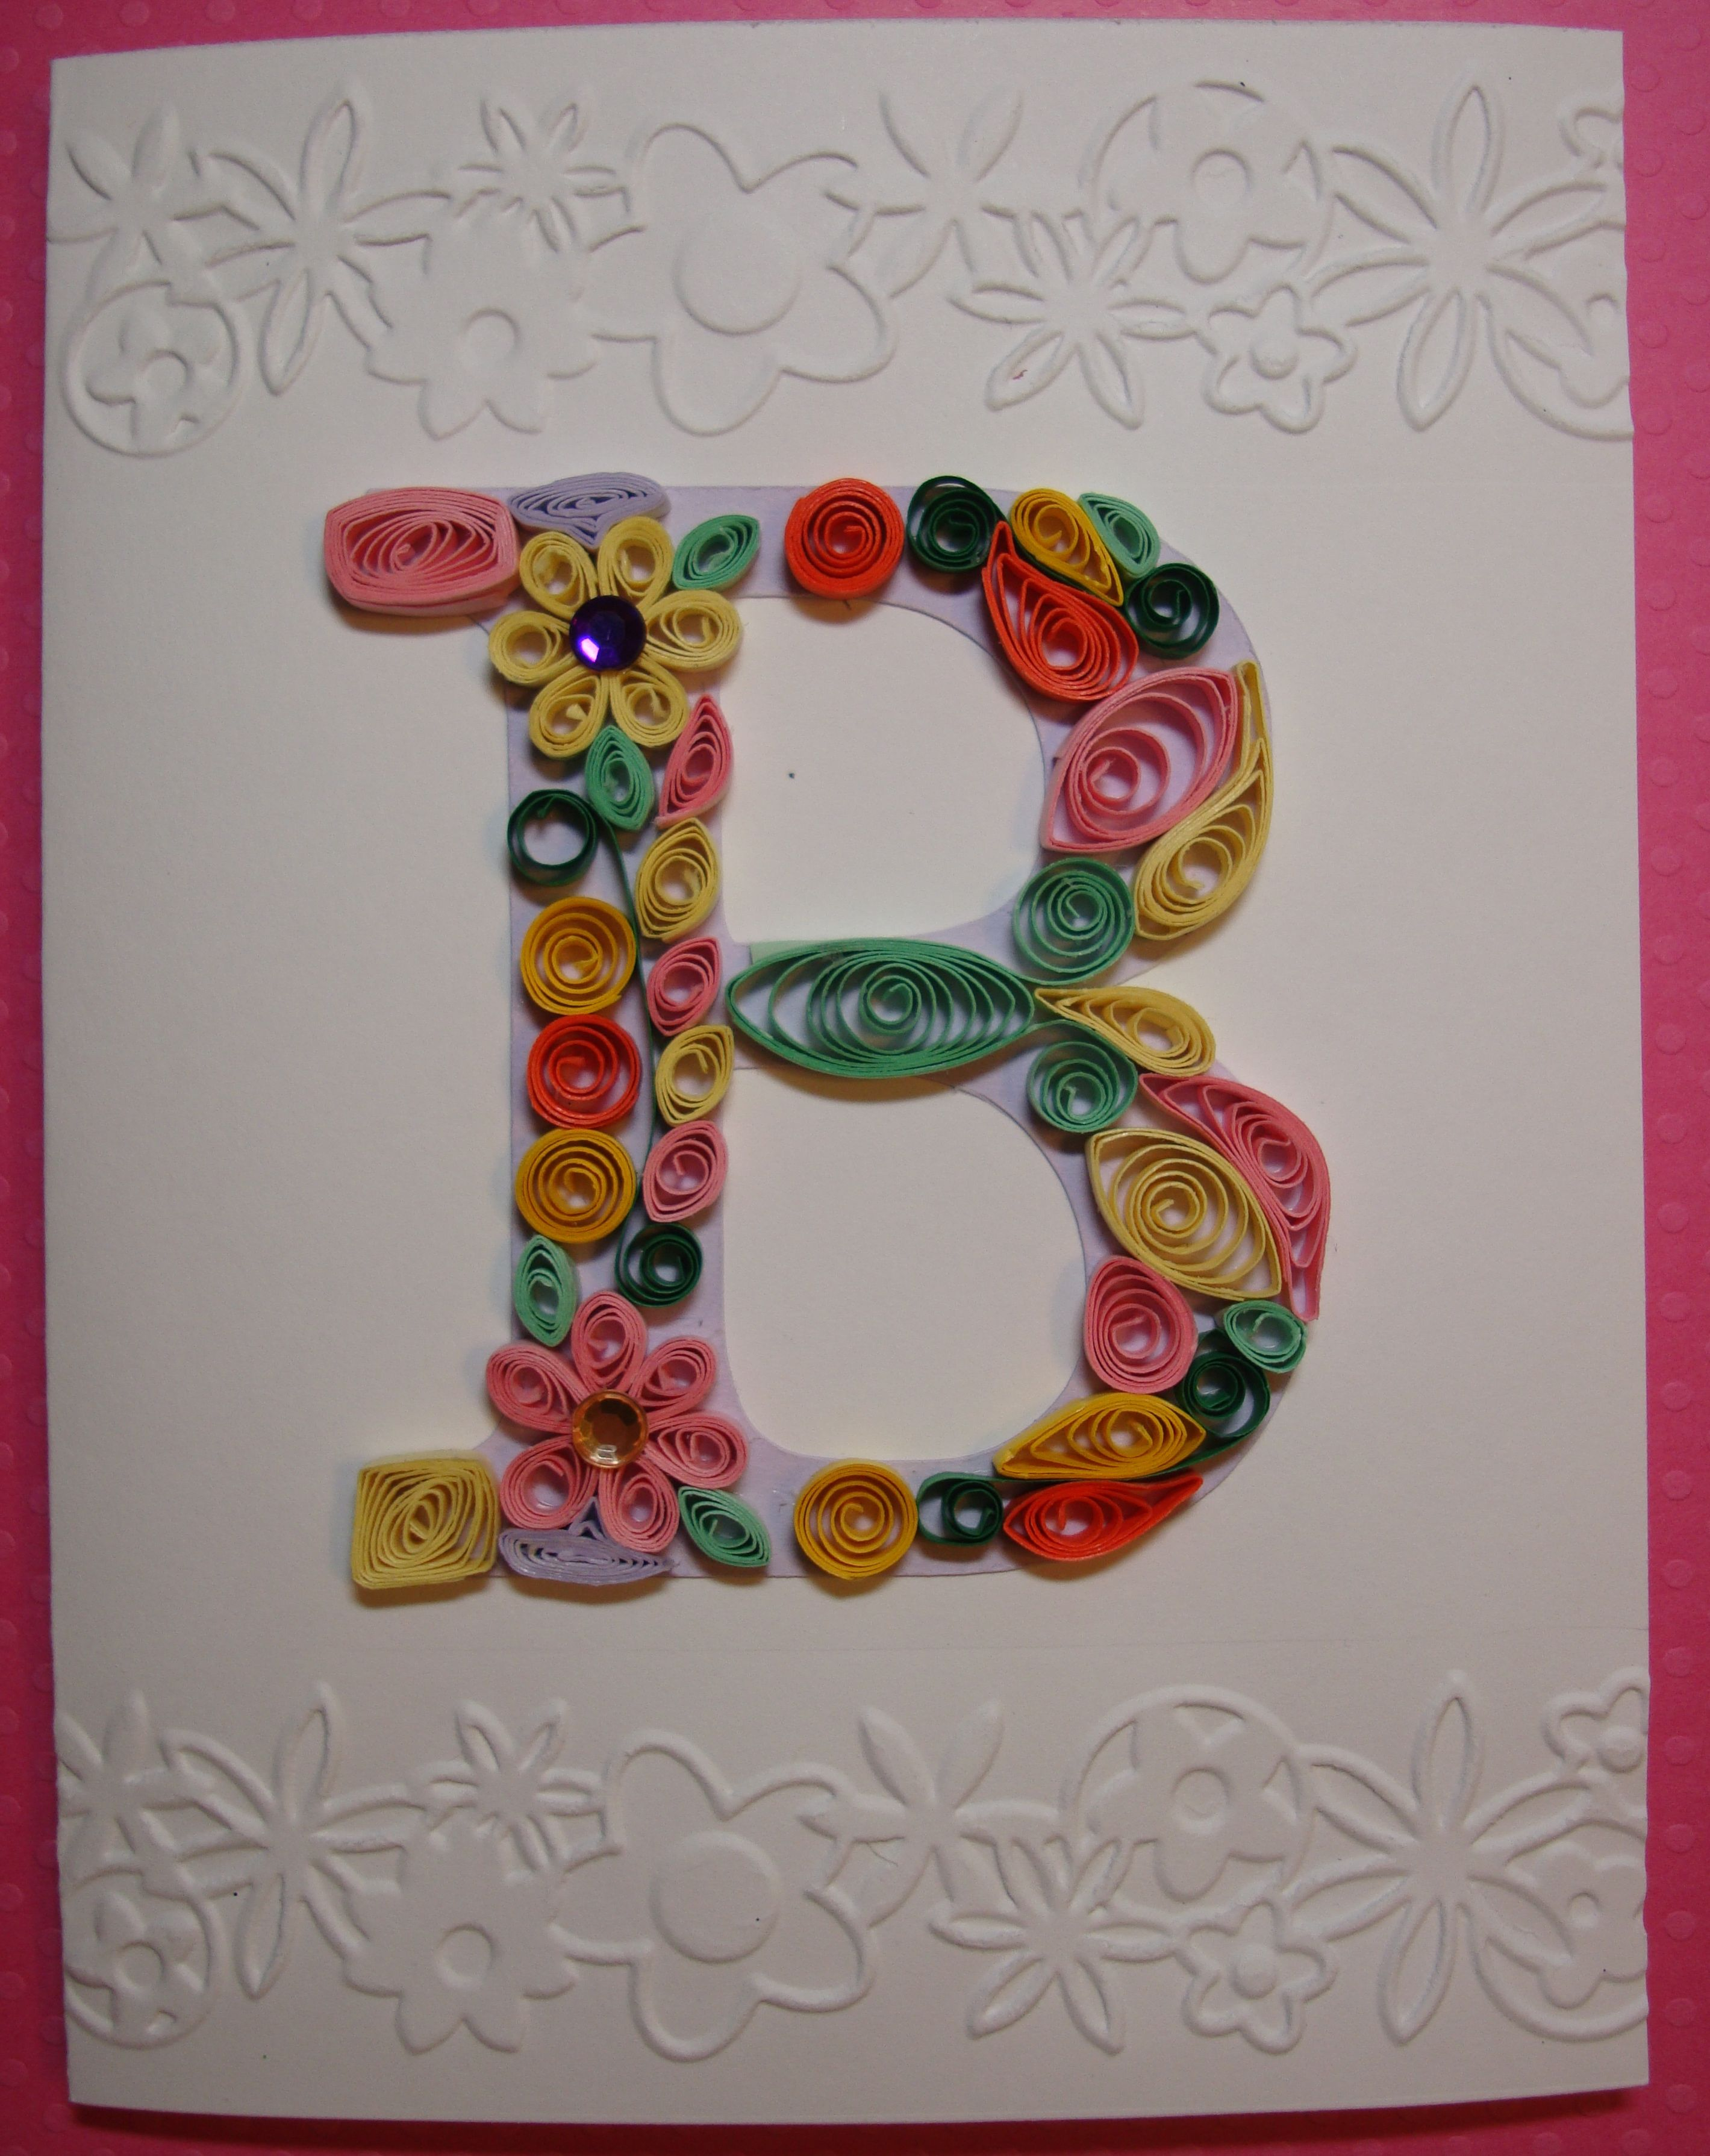 B is for Bonnie s Birthday I cut out a capital letter B with my